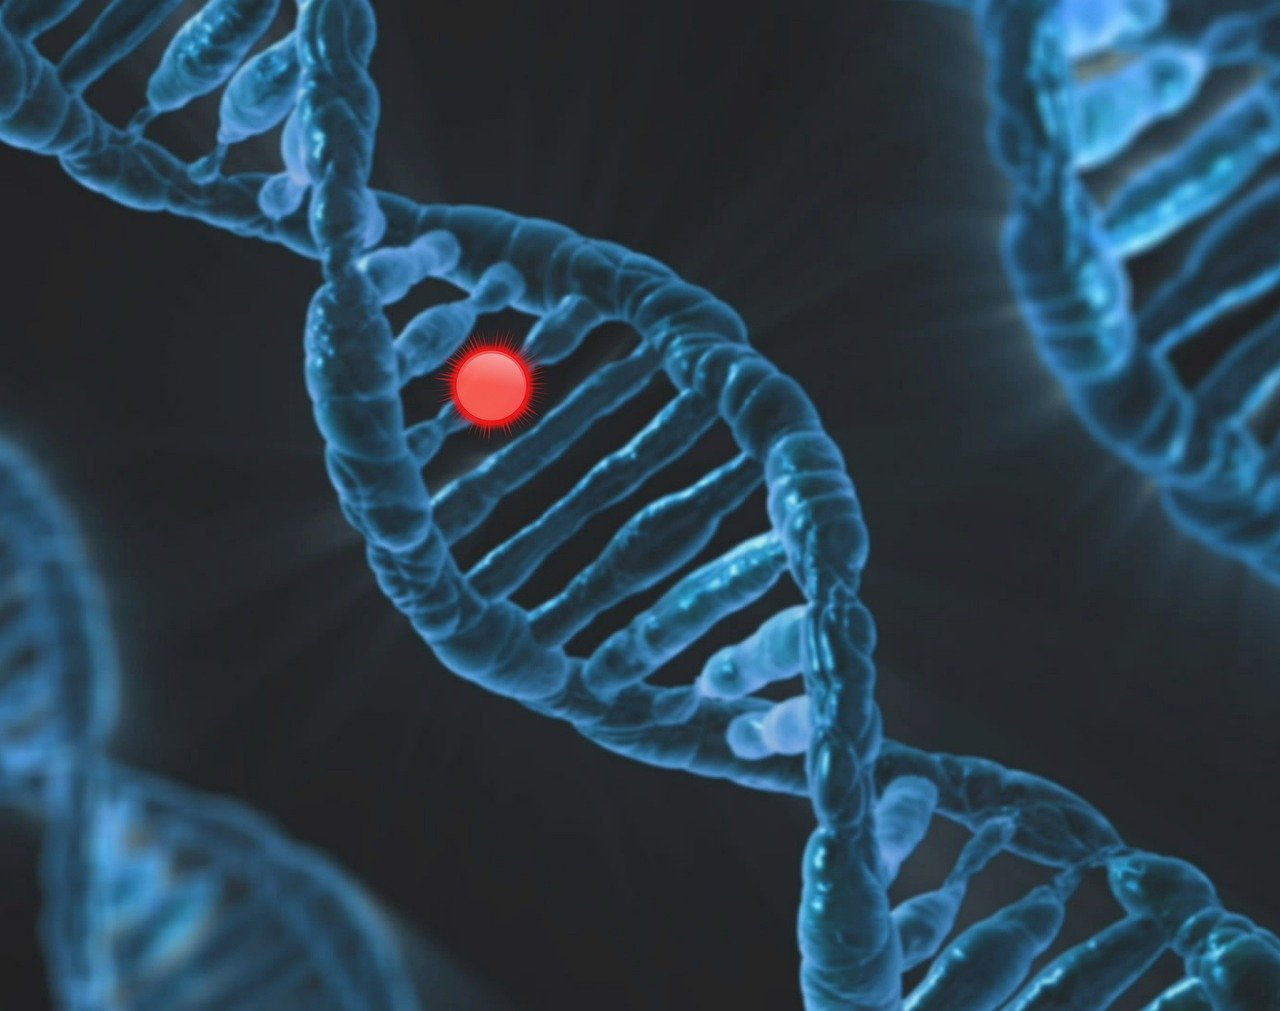 California Genetic Information Privacy Act signed into law